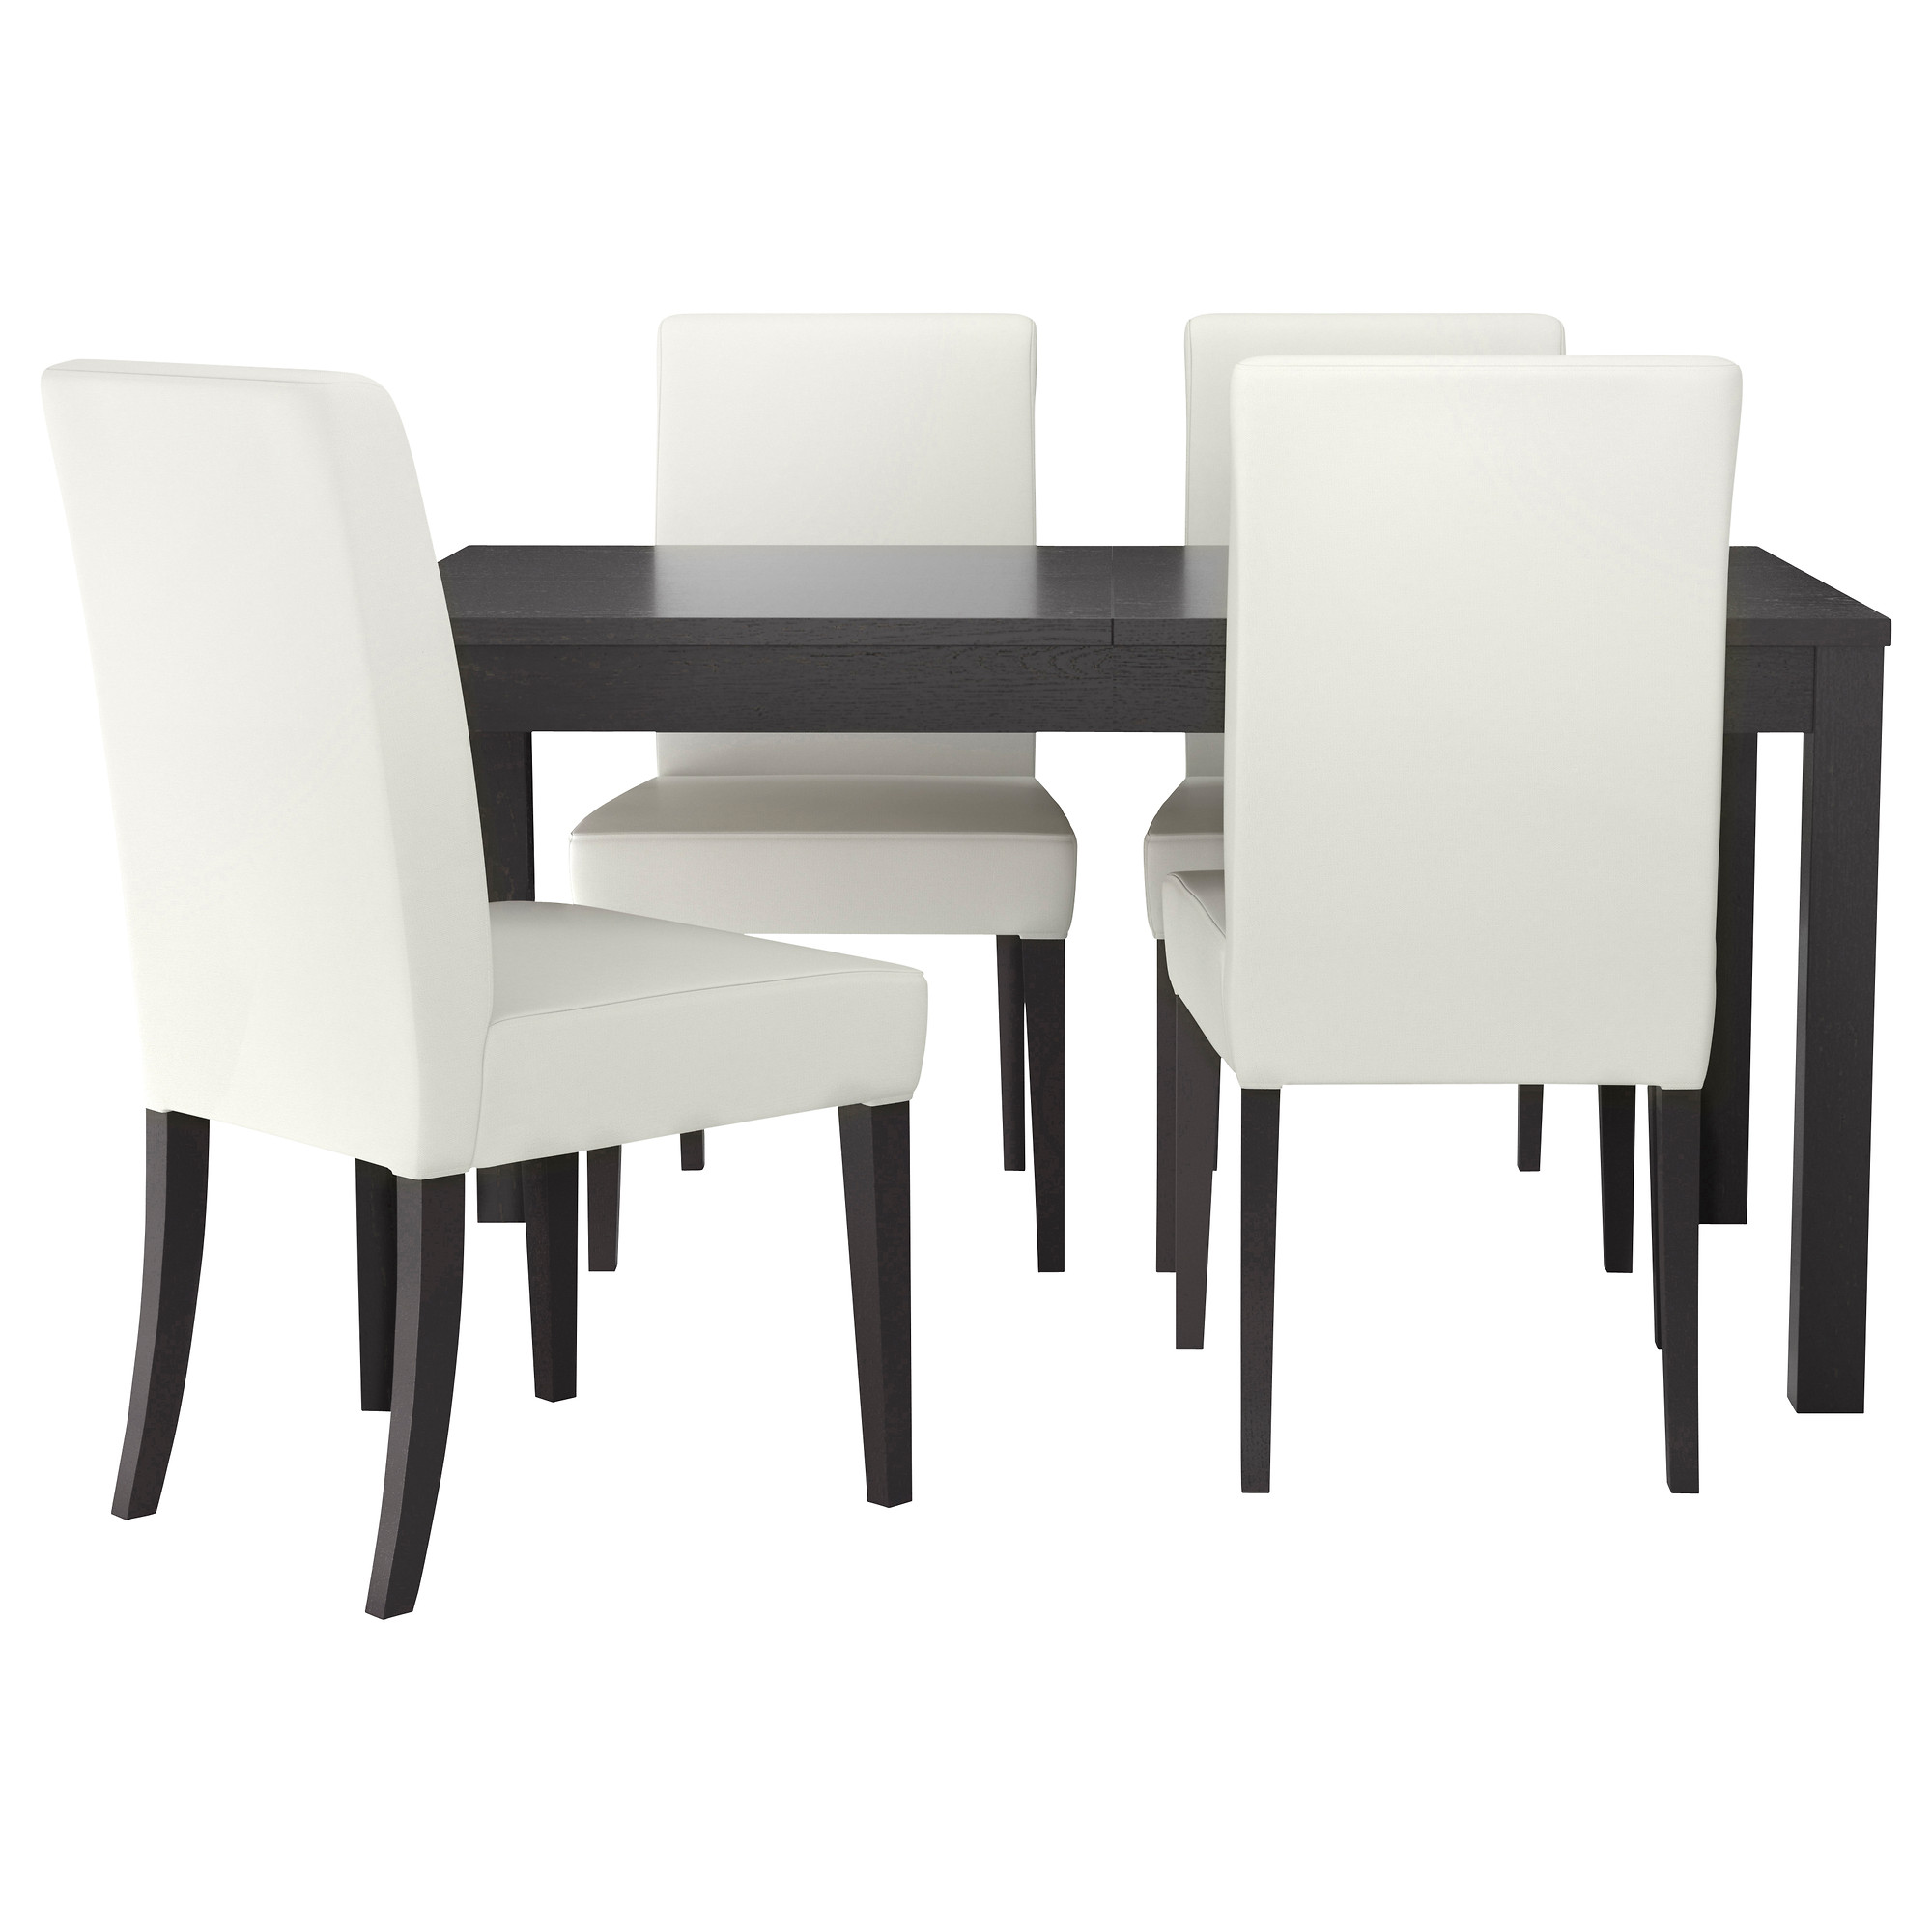 BJURSTA HENRIKSDAL Table And 4 Chairs